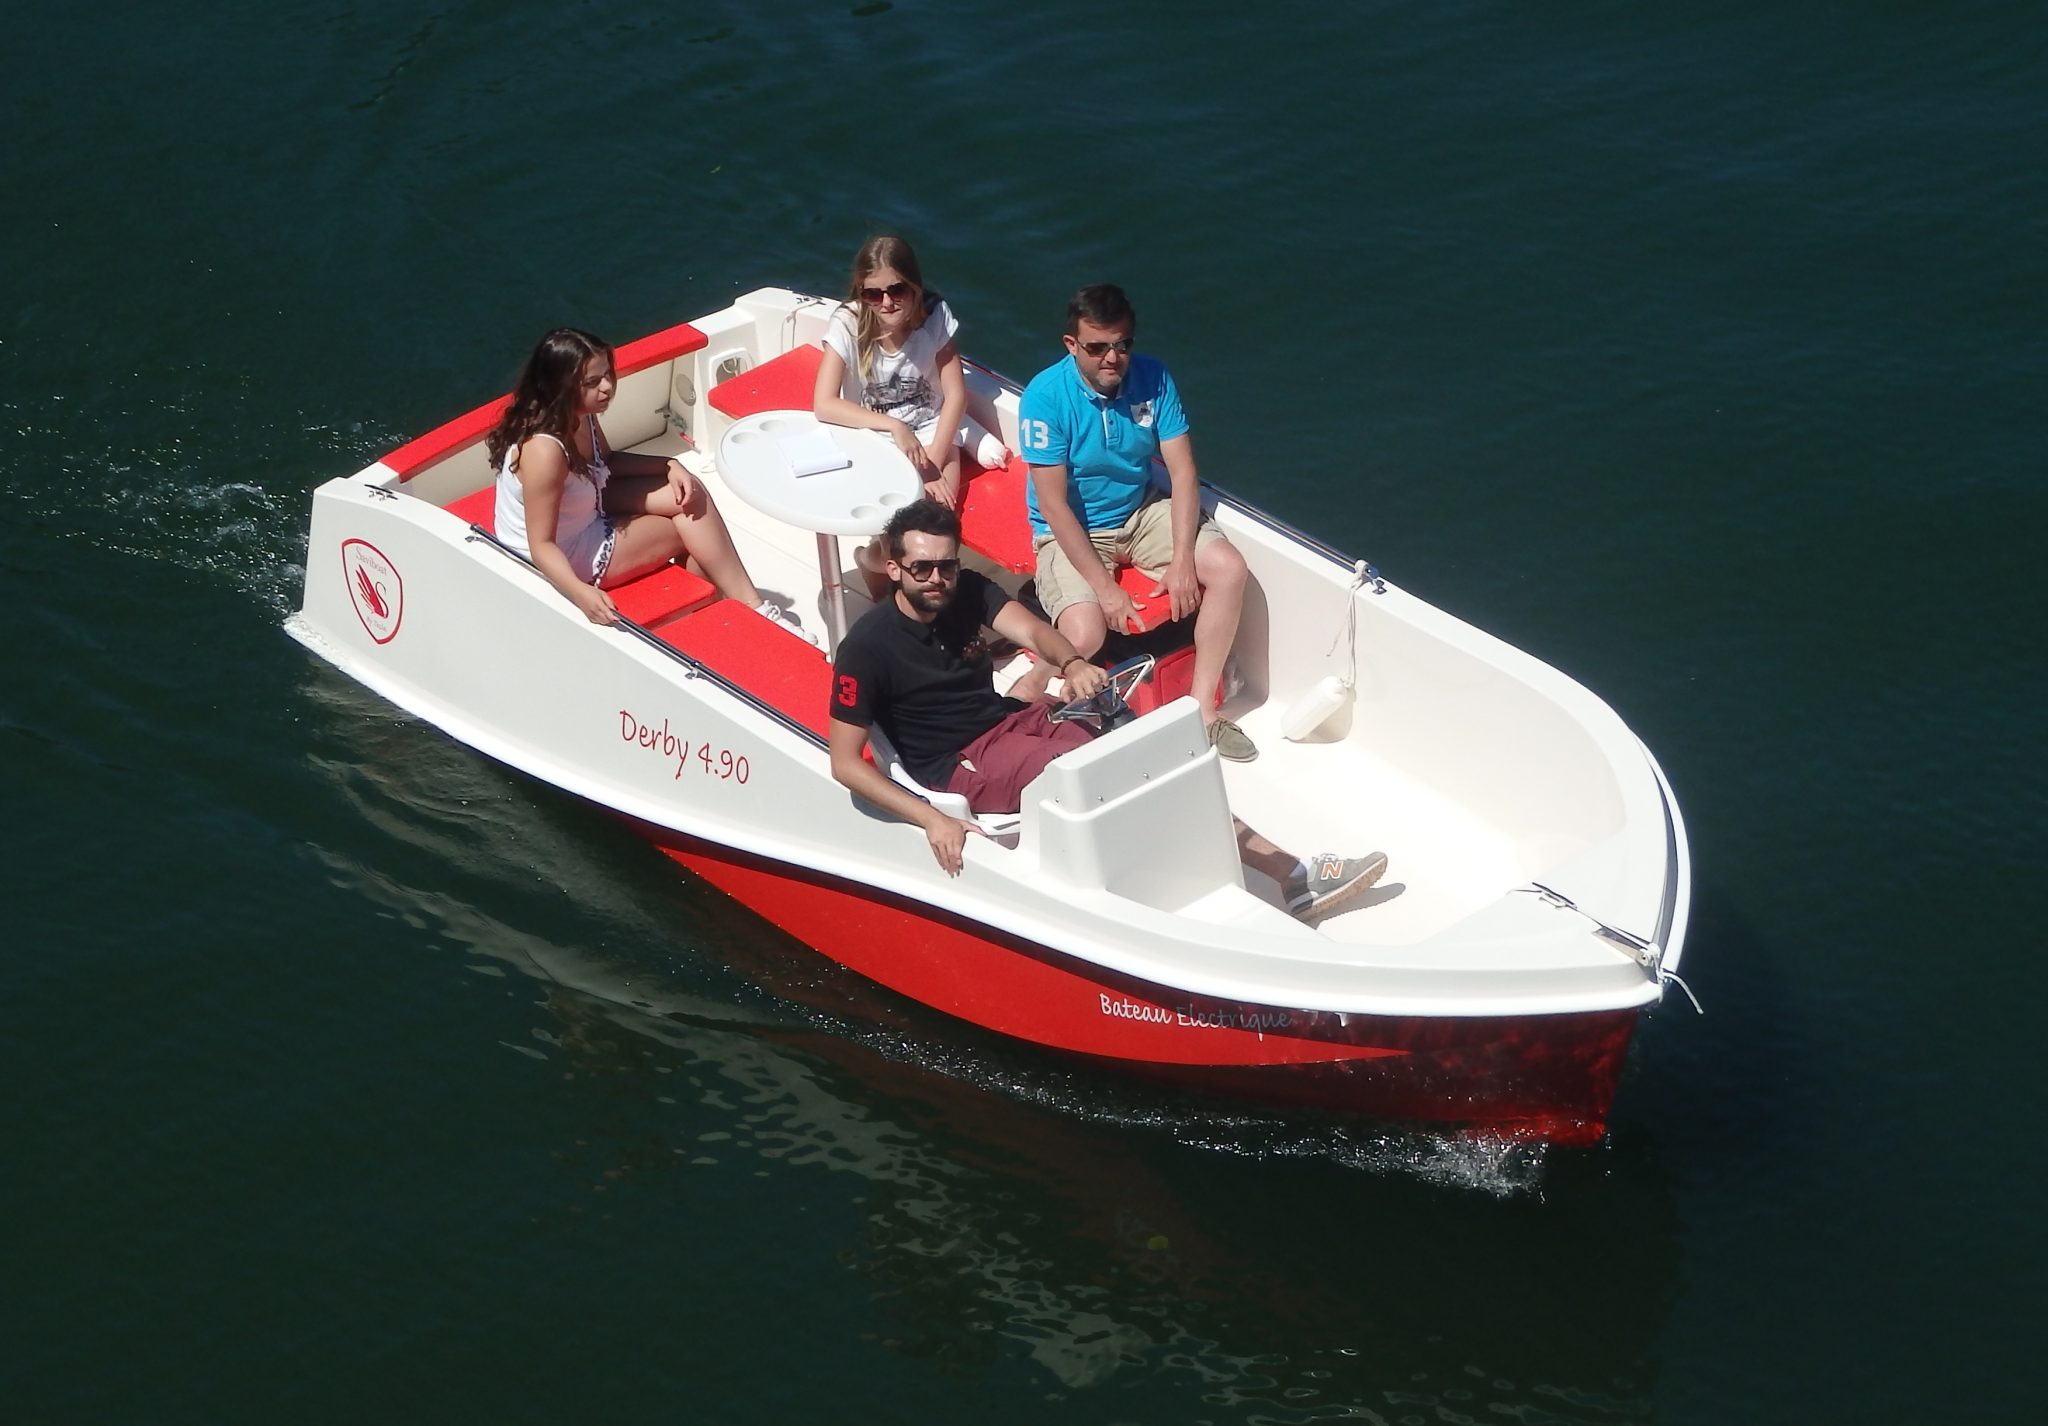 Forward helm and aft seating on the Derby 4.90